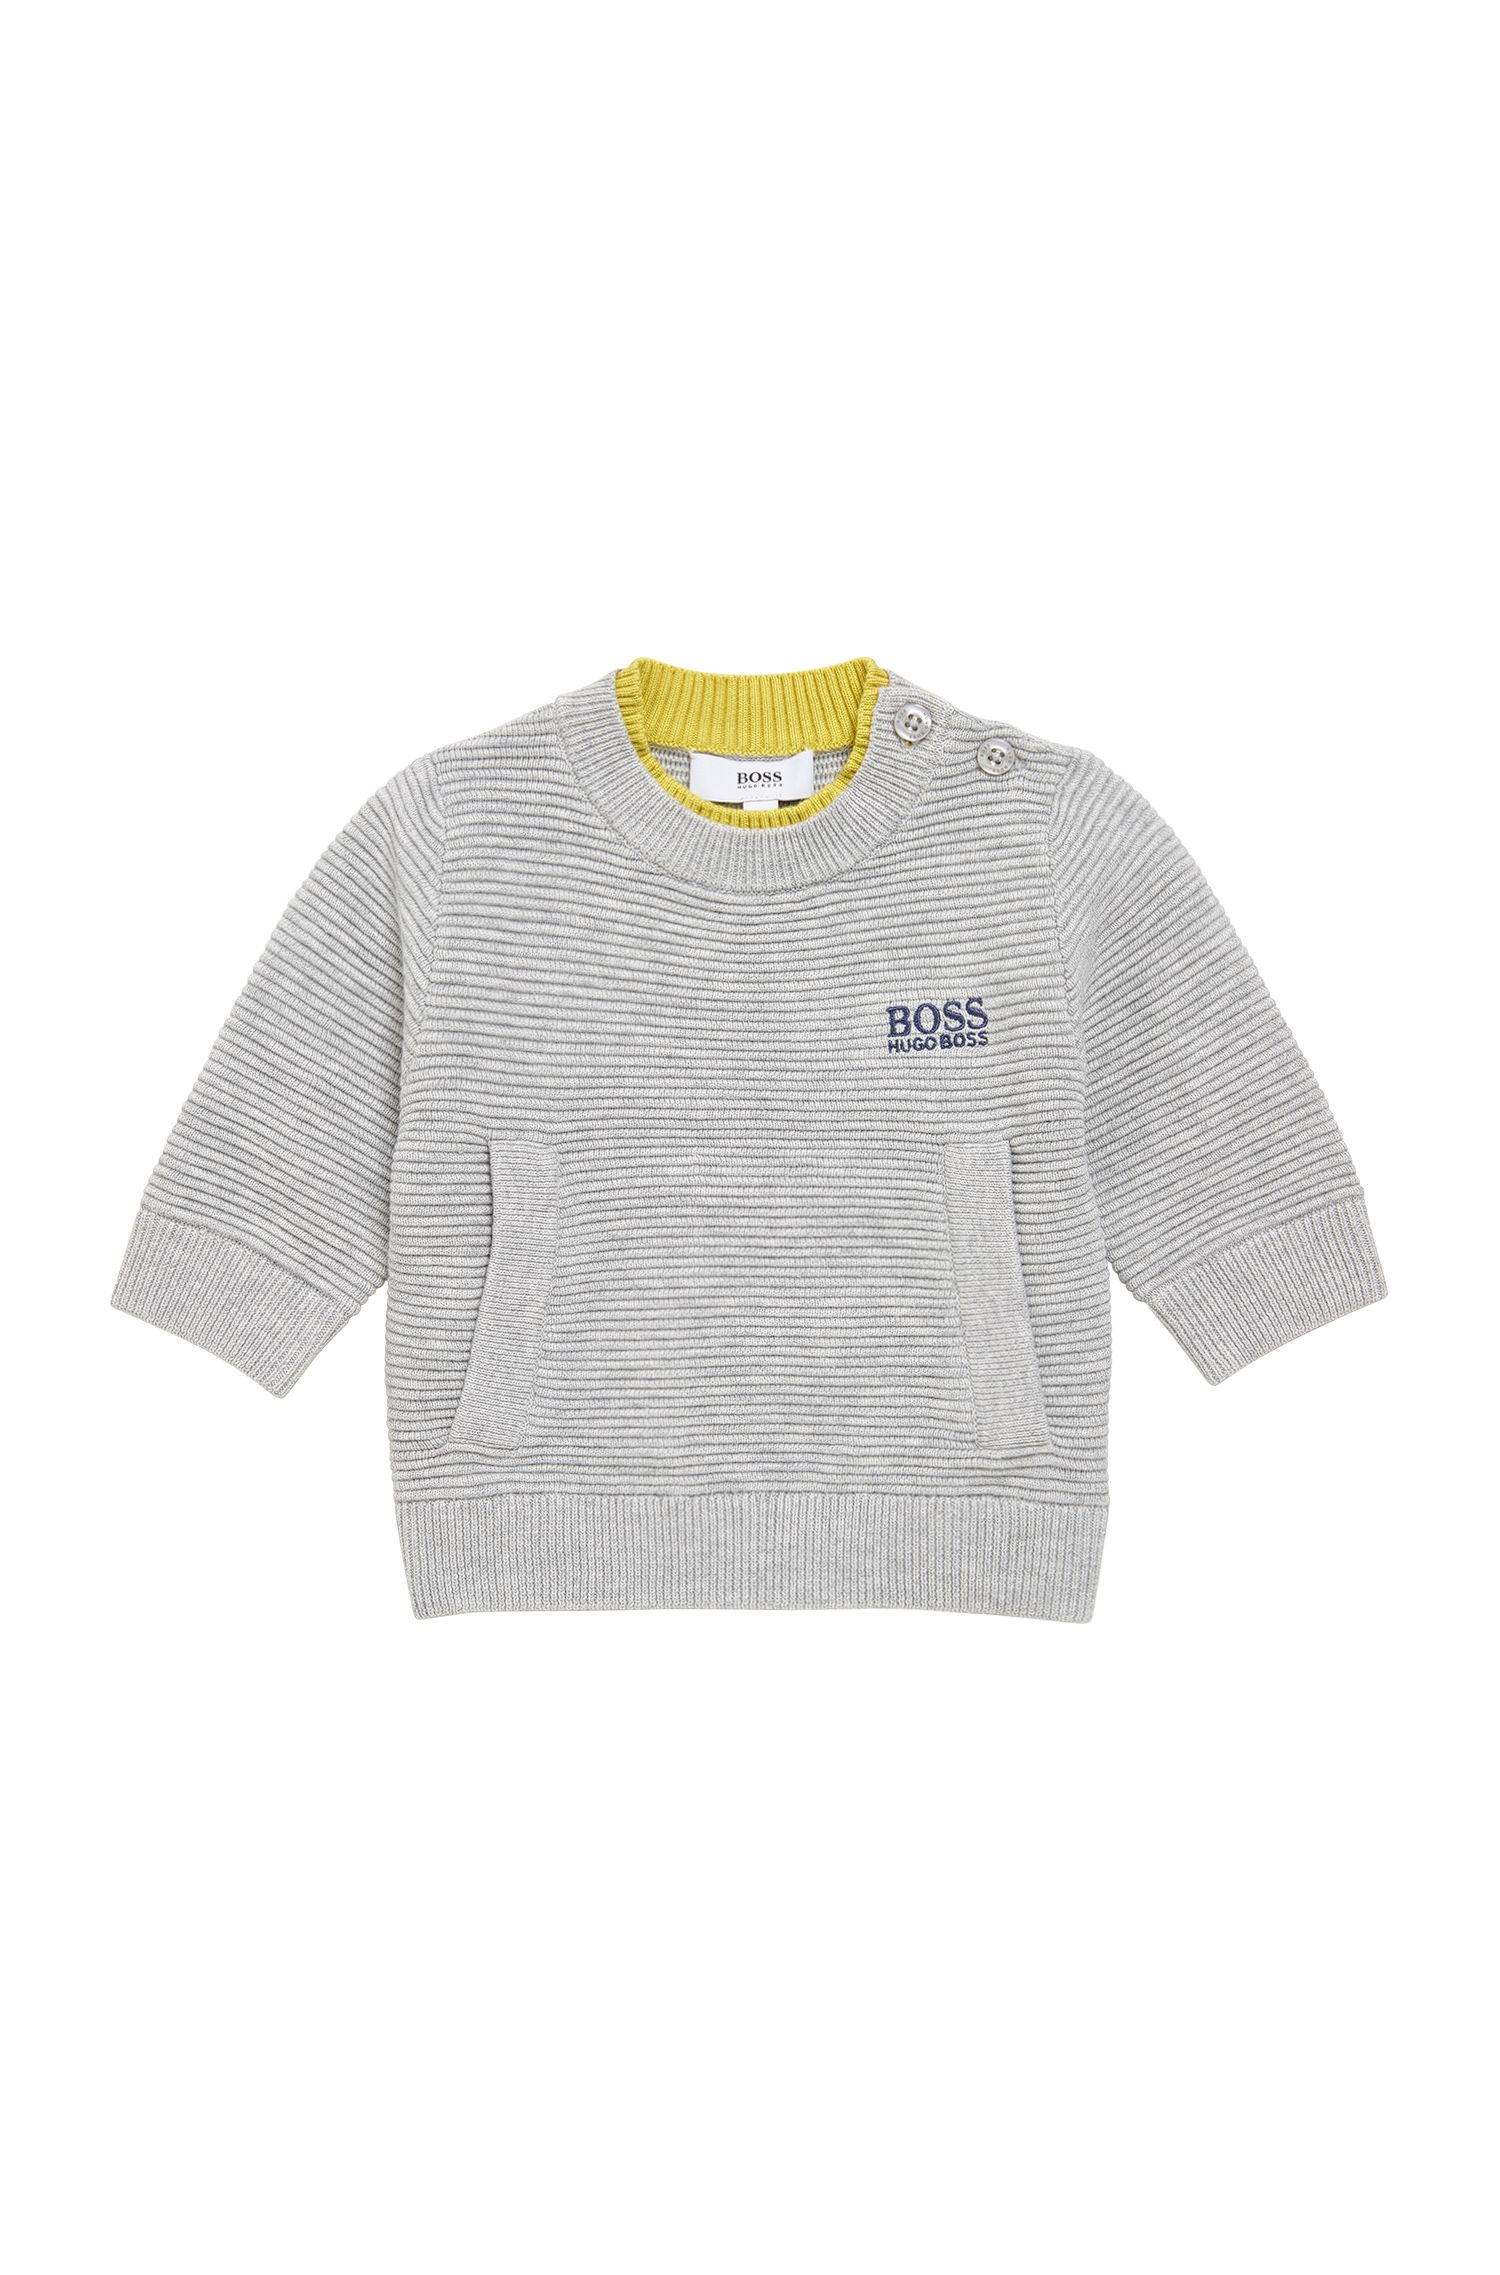 Kids' sweater in textured stretch cotton blend: 'J00515'